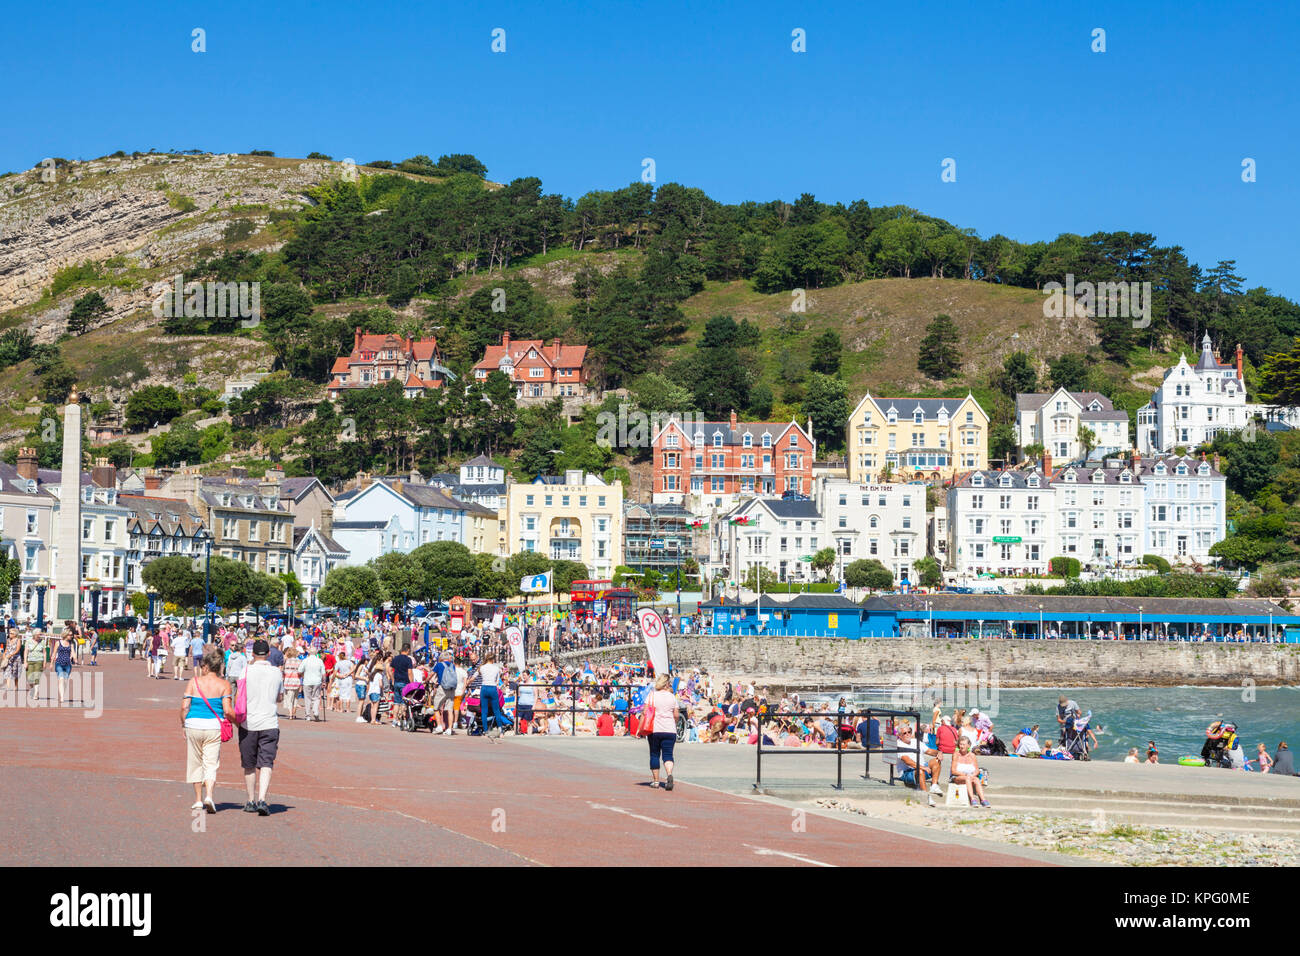 north wales llandudno north wales tourists and holidaymakers on the sandy beach at llandudno seafront on a summers - Stock Image